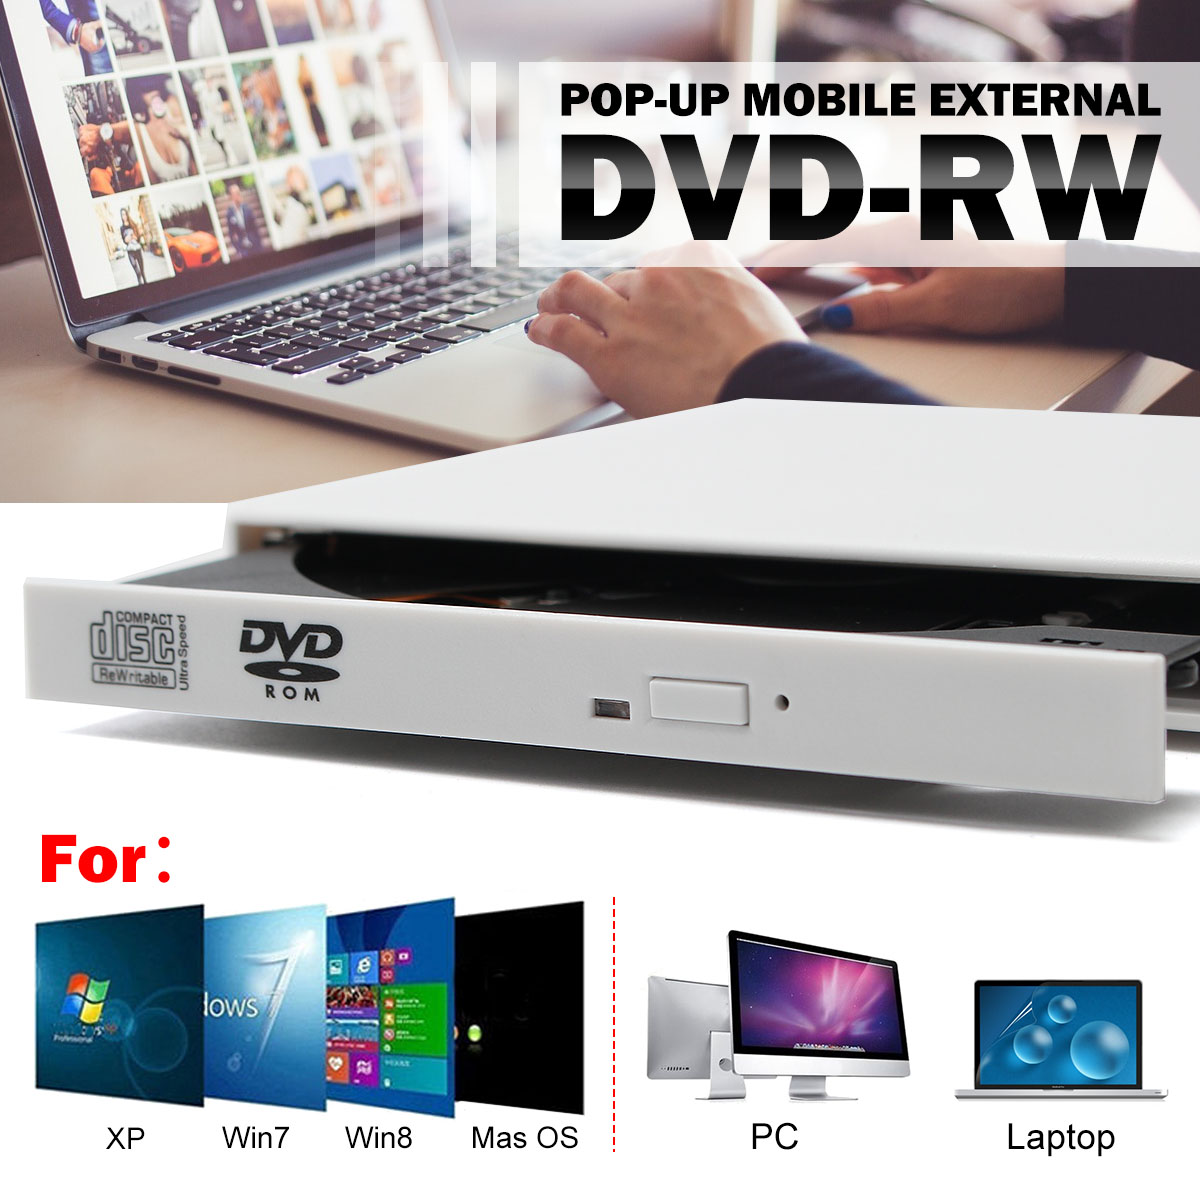 USB 2.0 Portátil Externo Ultra Slim Slot-in DVD-RW CD-RW CD ROM DVD Player Unidade Escritor Rewriter Burner para PC